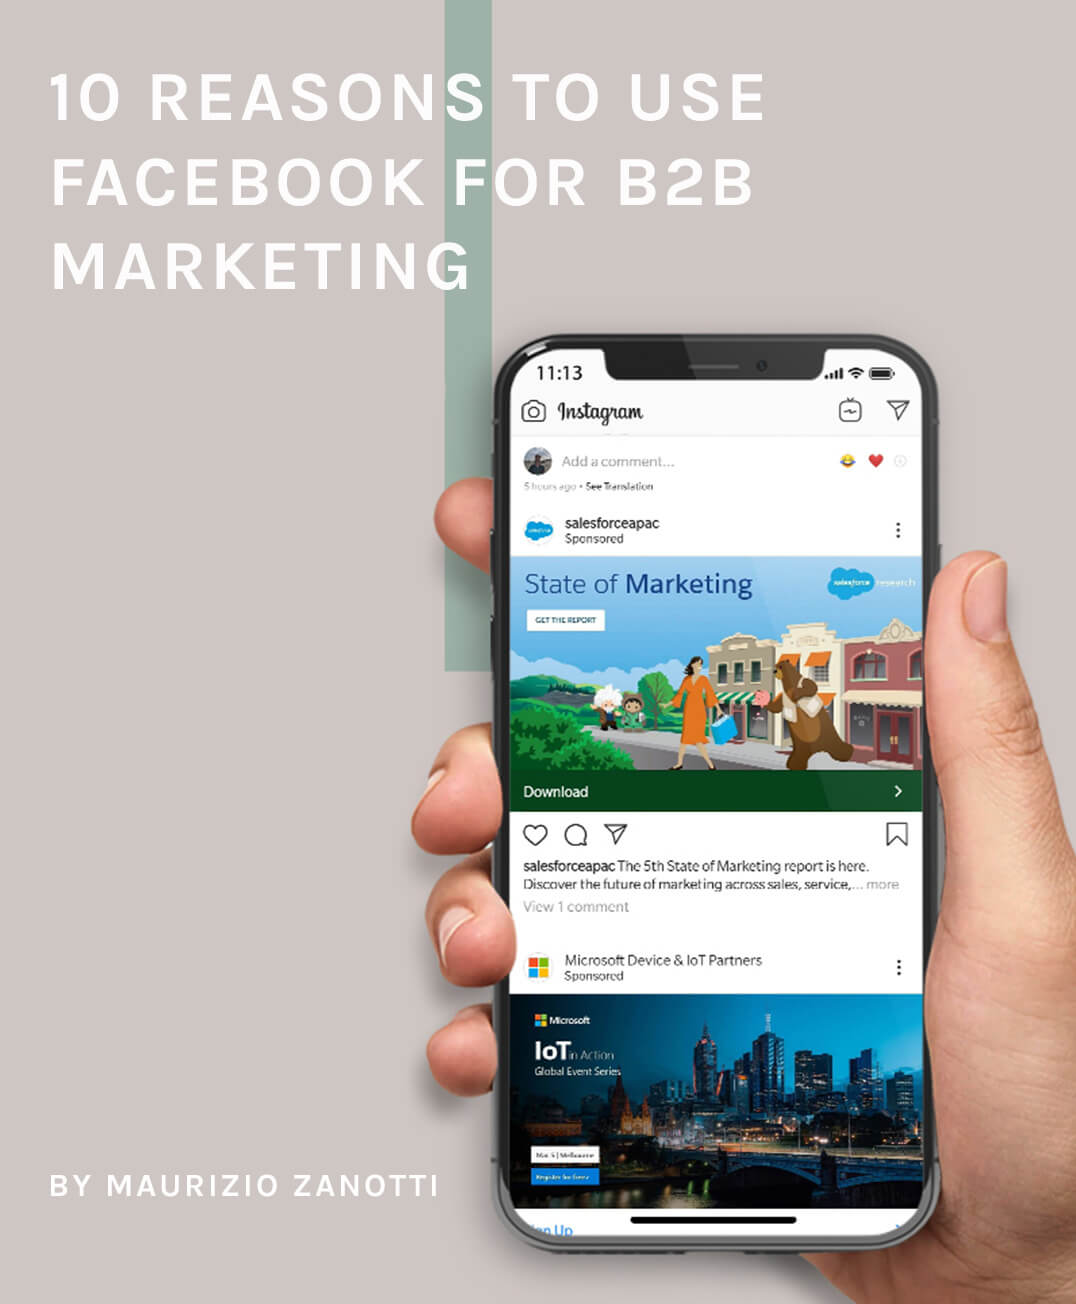 10 reasons to use Facebook for B2B Marketing